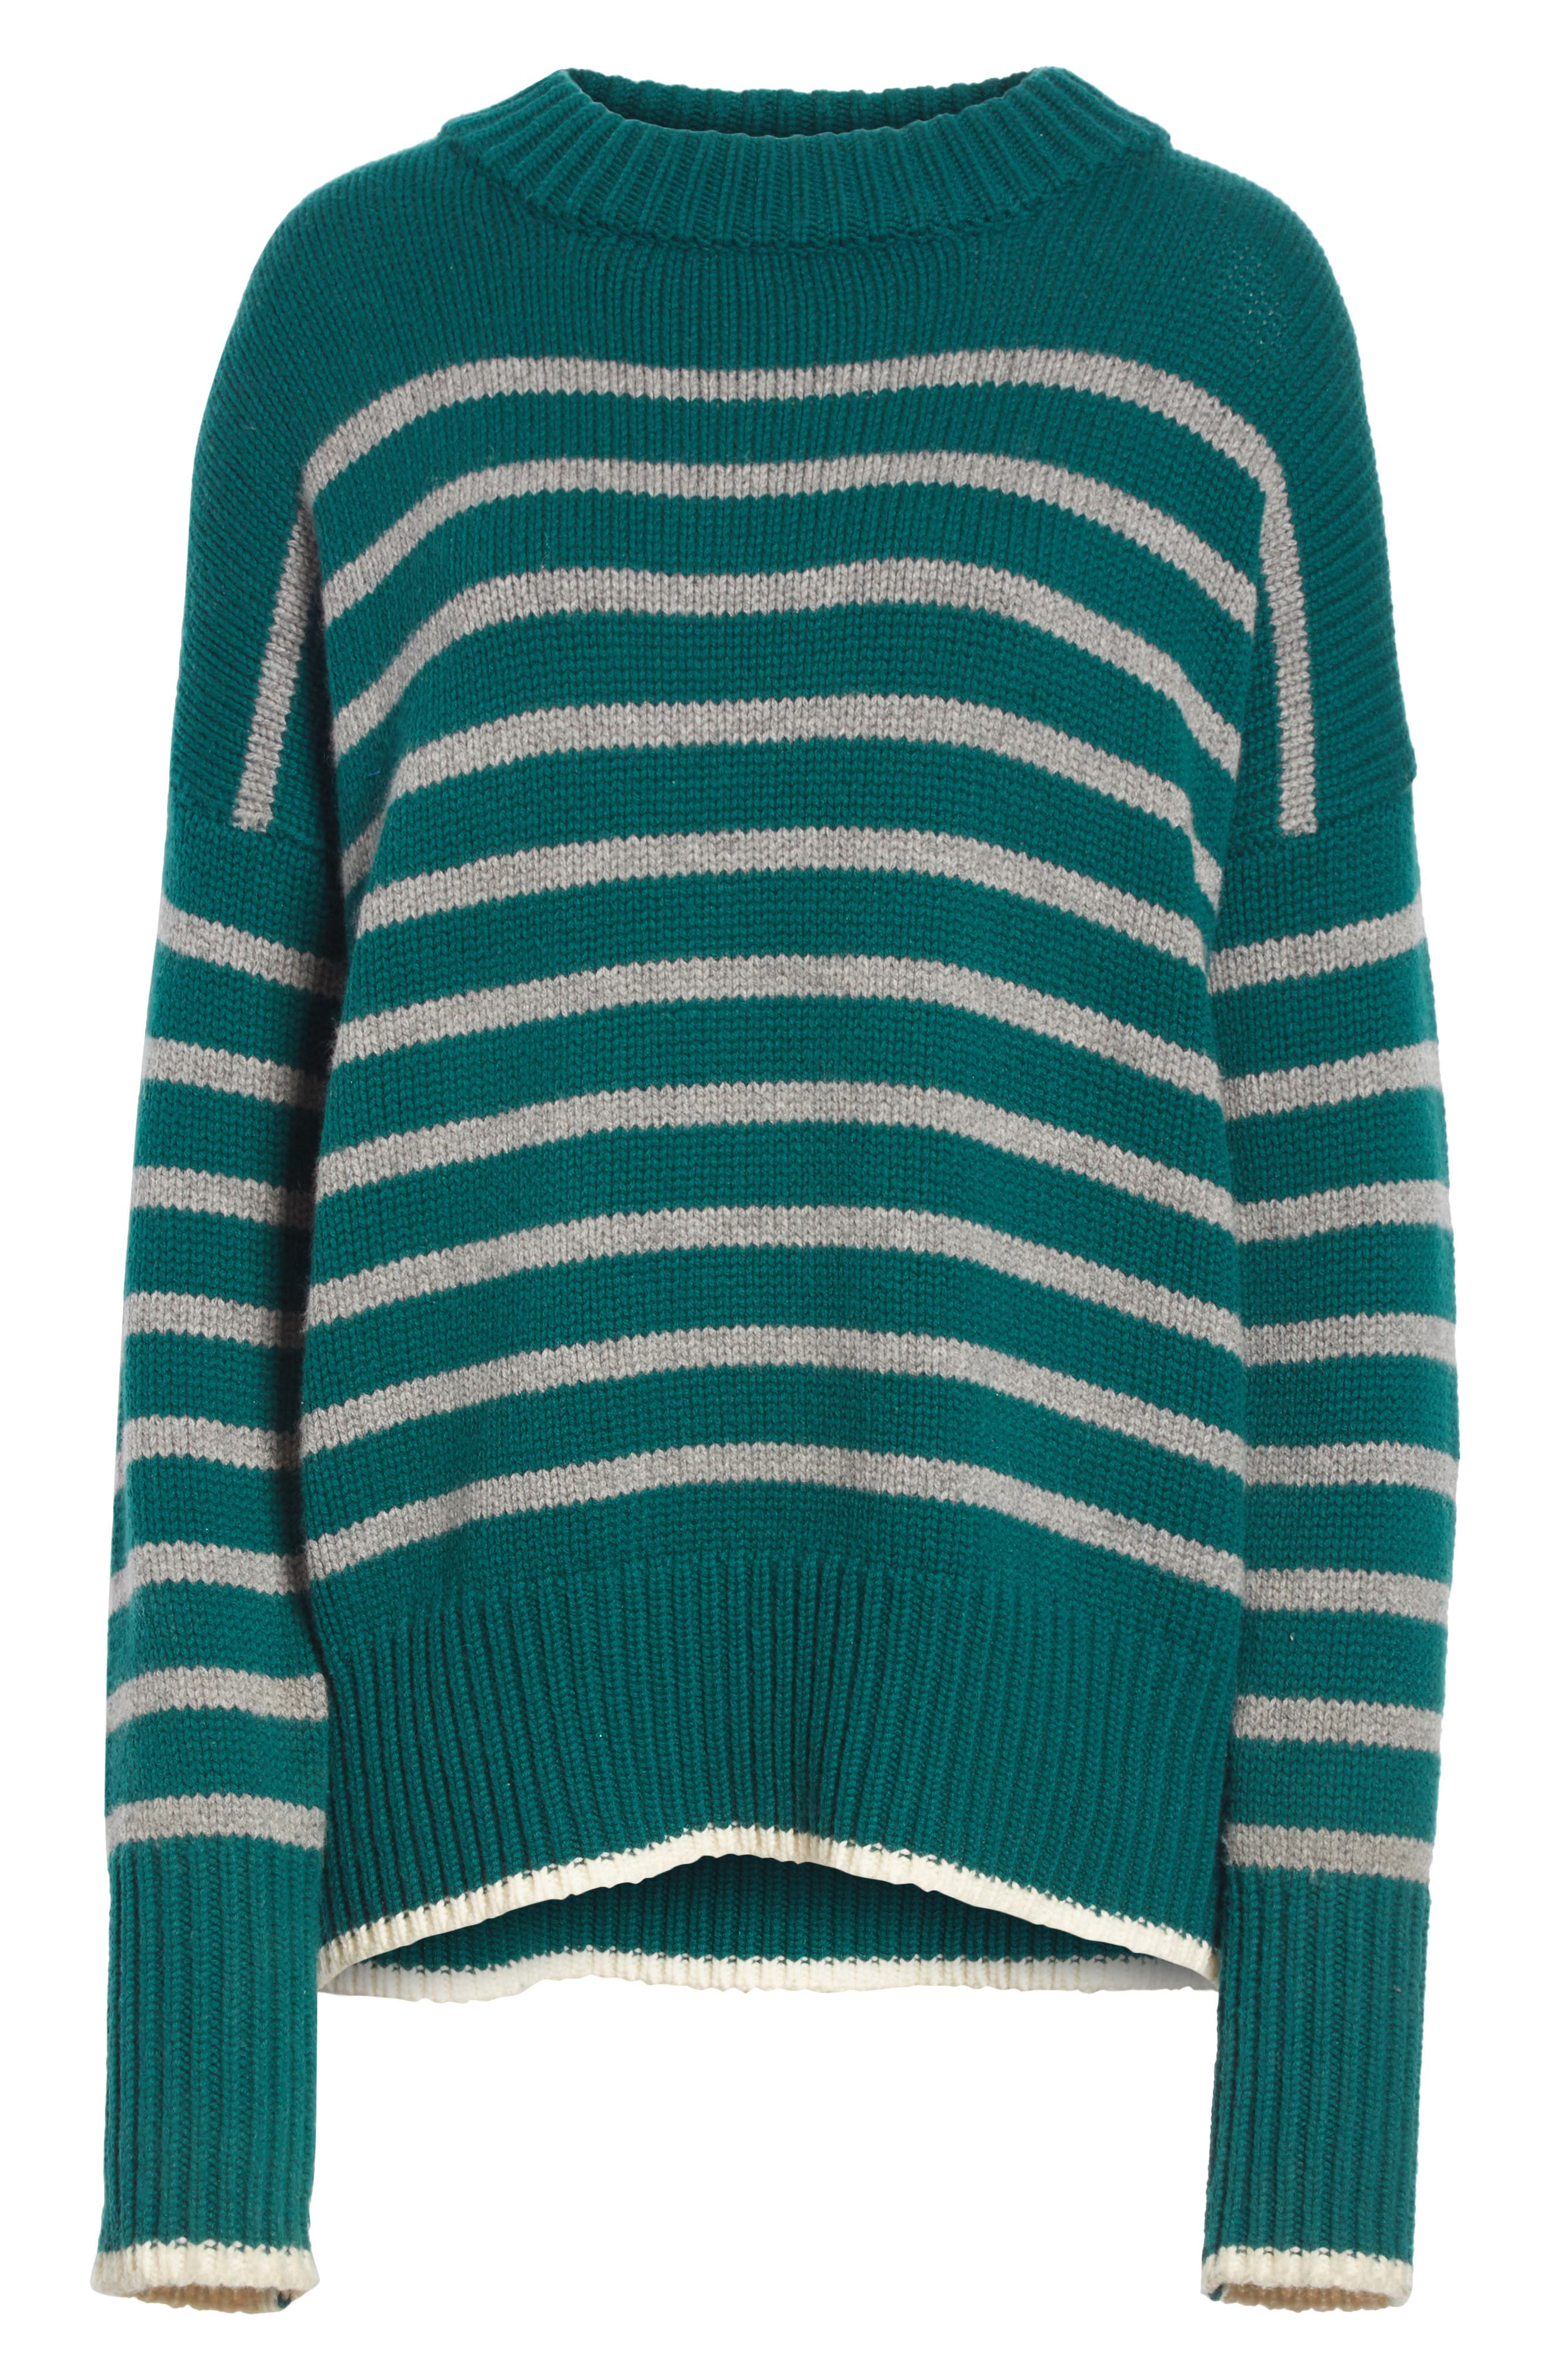 Marin Wool & Cashmere Sweater,                             Alternate thumbnail 6, color,                             FOREST GREEN/ GREY MARLE